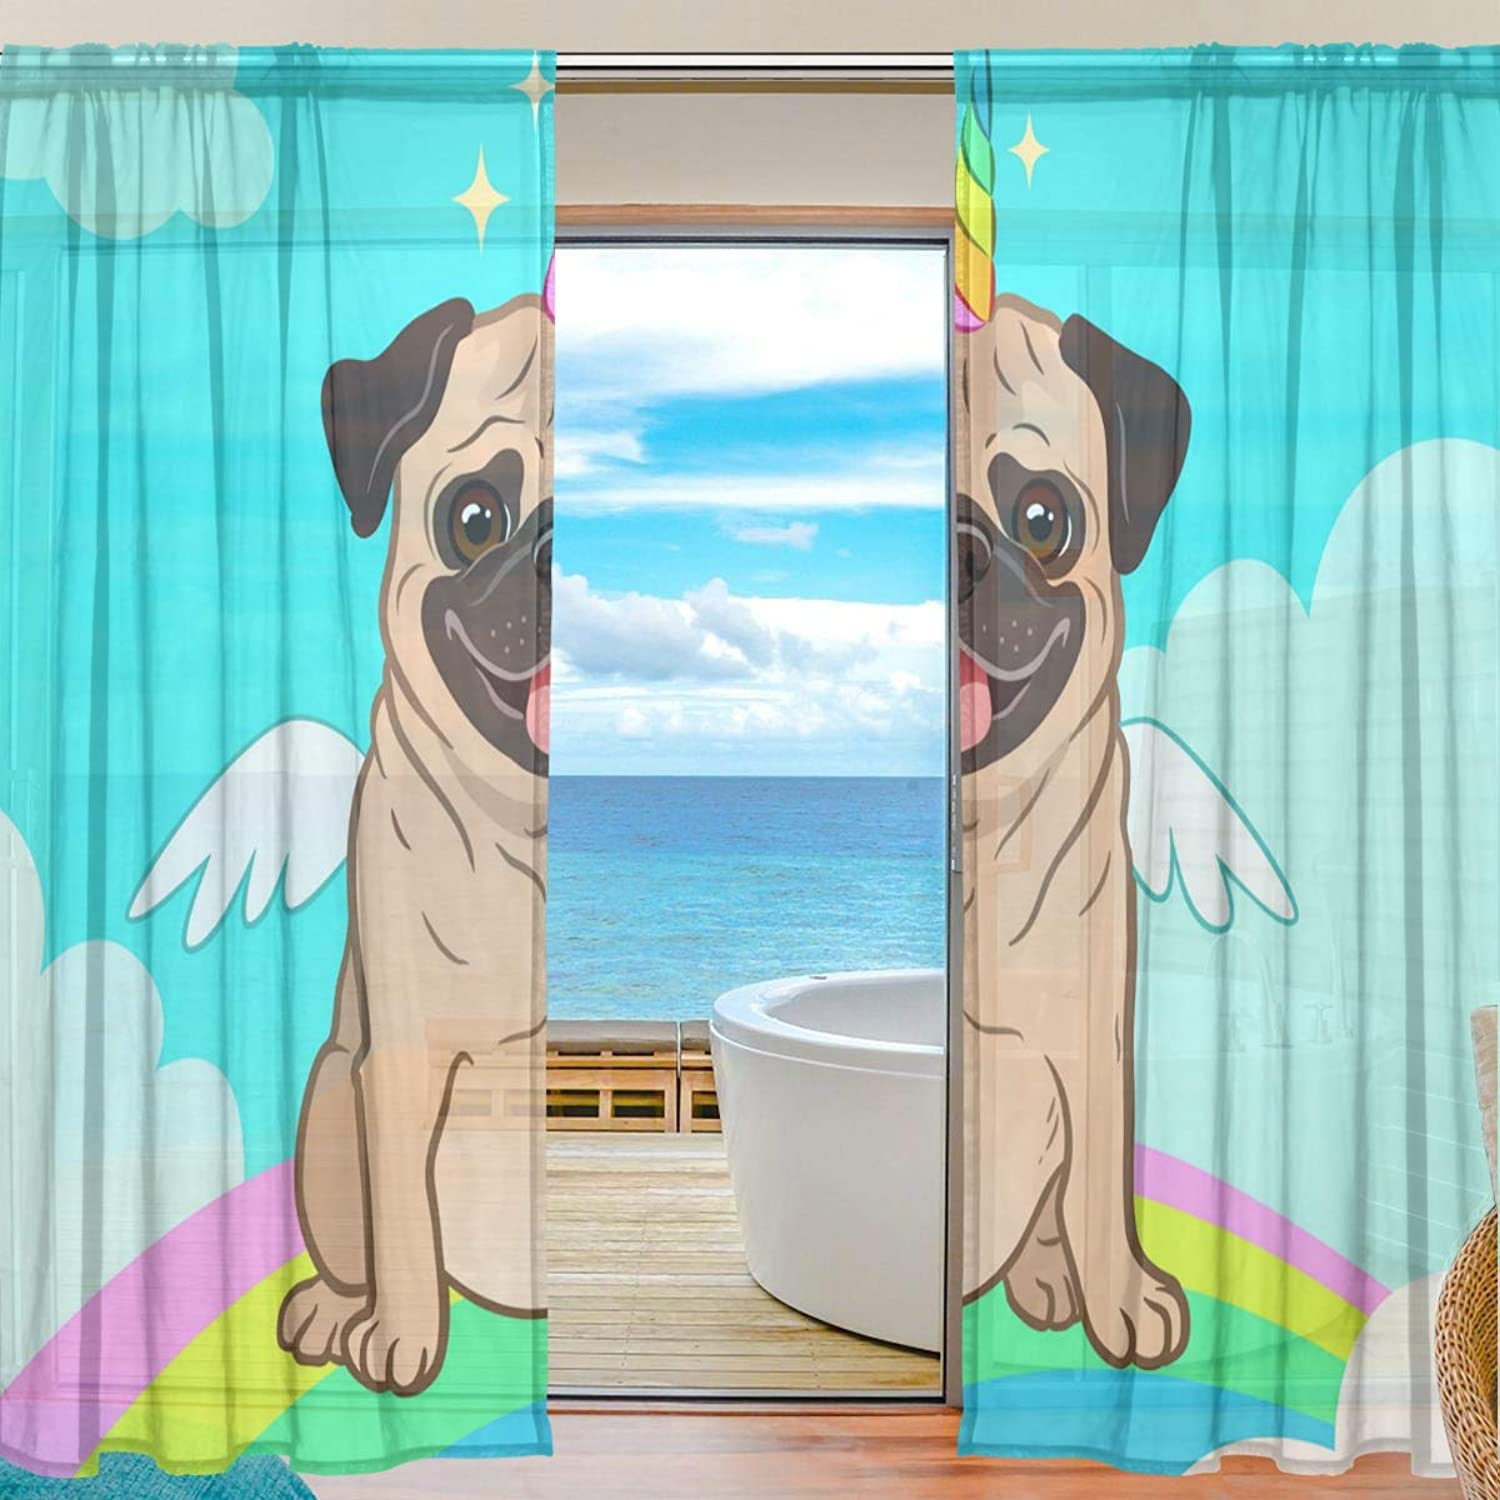 Unicorn Pug 2 Pieces Curtain Panel 55 x 78 inches for Bedroom Living Room